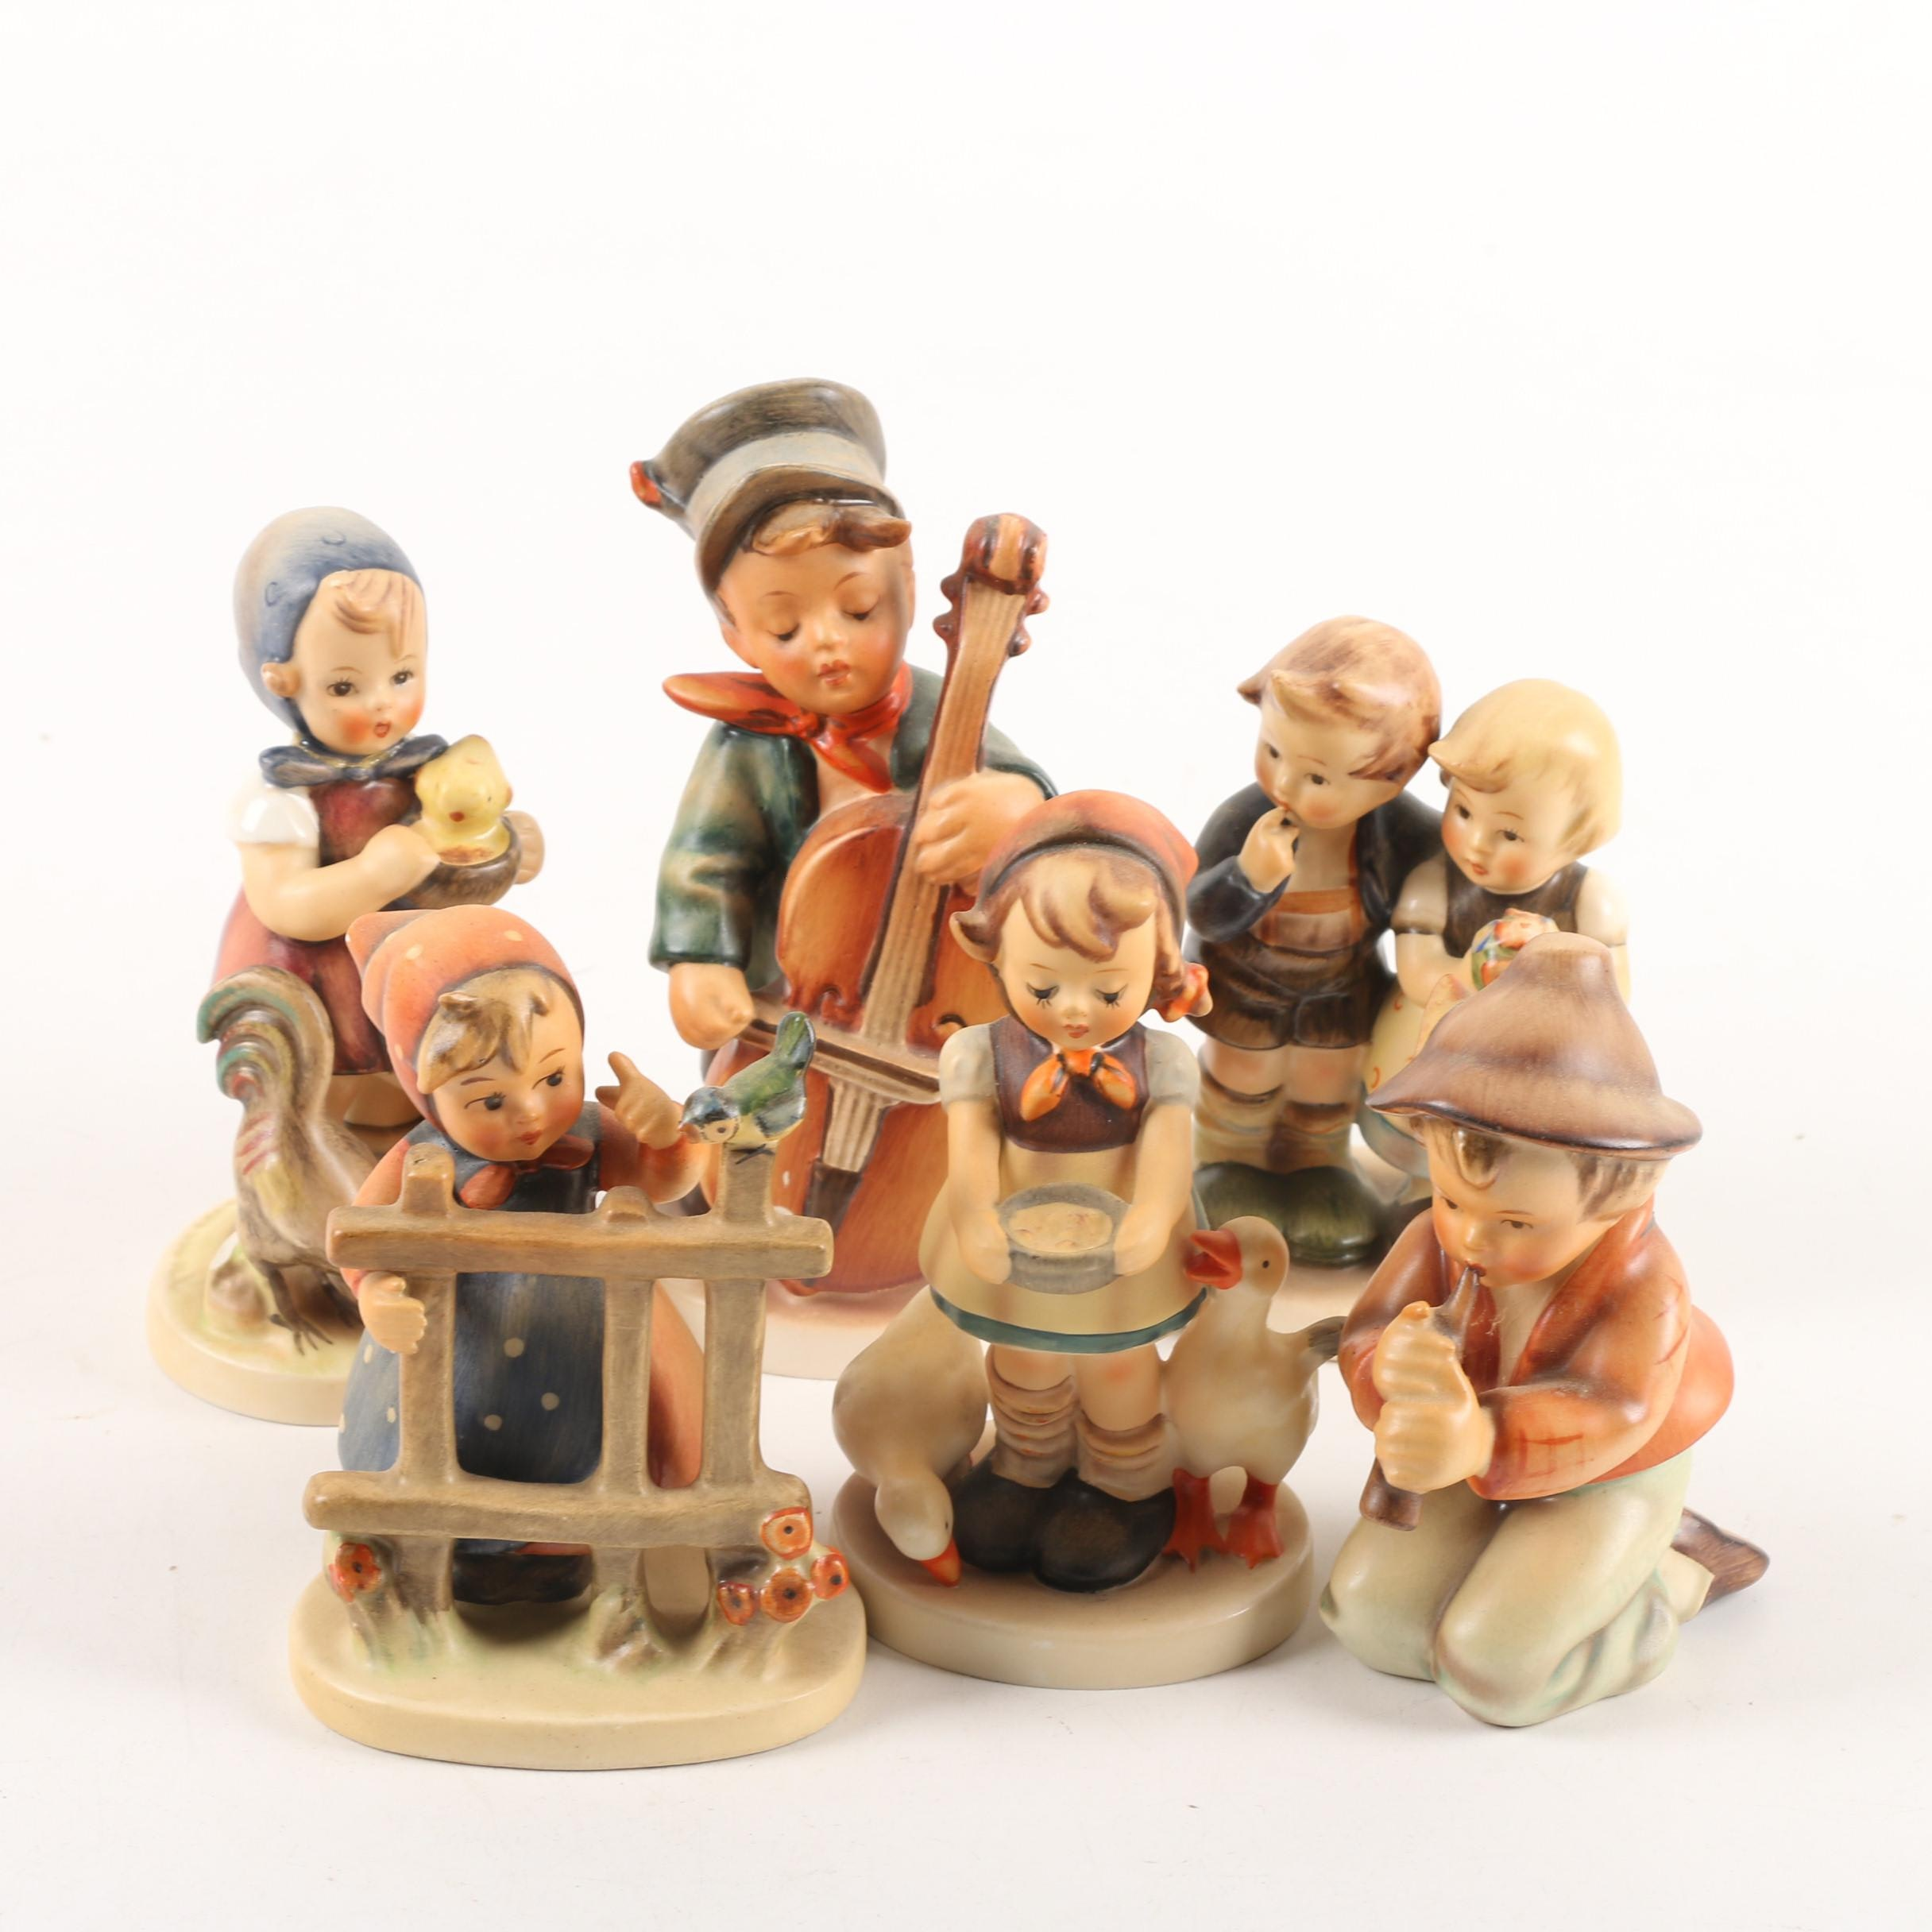 """Hummel Figurines, """"Signs of Spring"""", """"Be Patient"""", """"Feeding Time"""" and Others"""